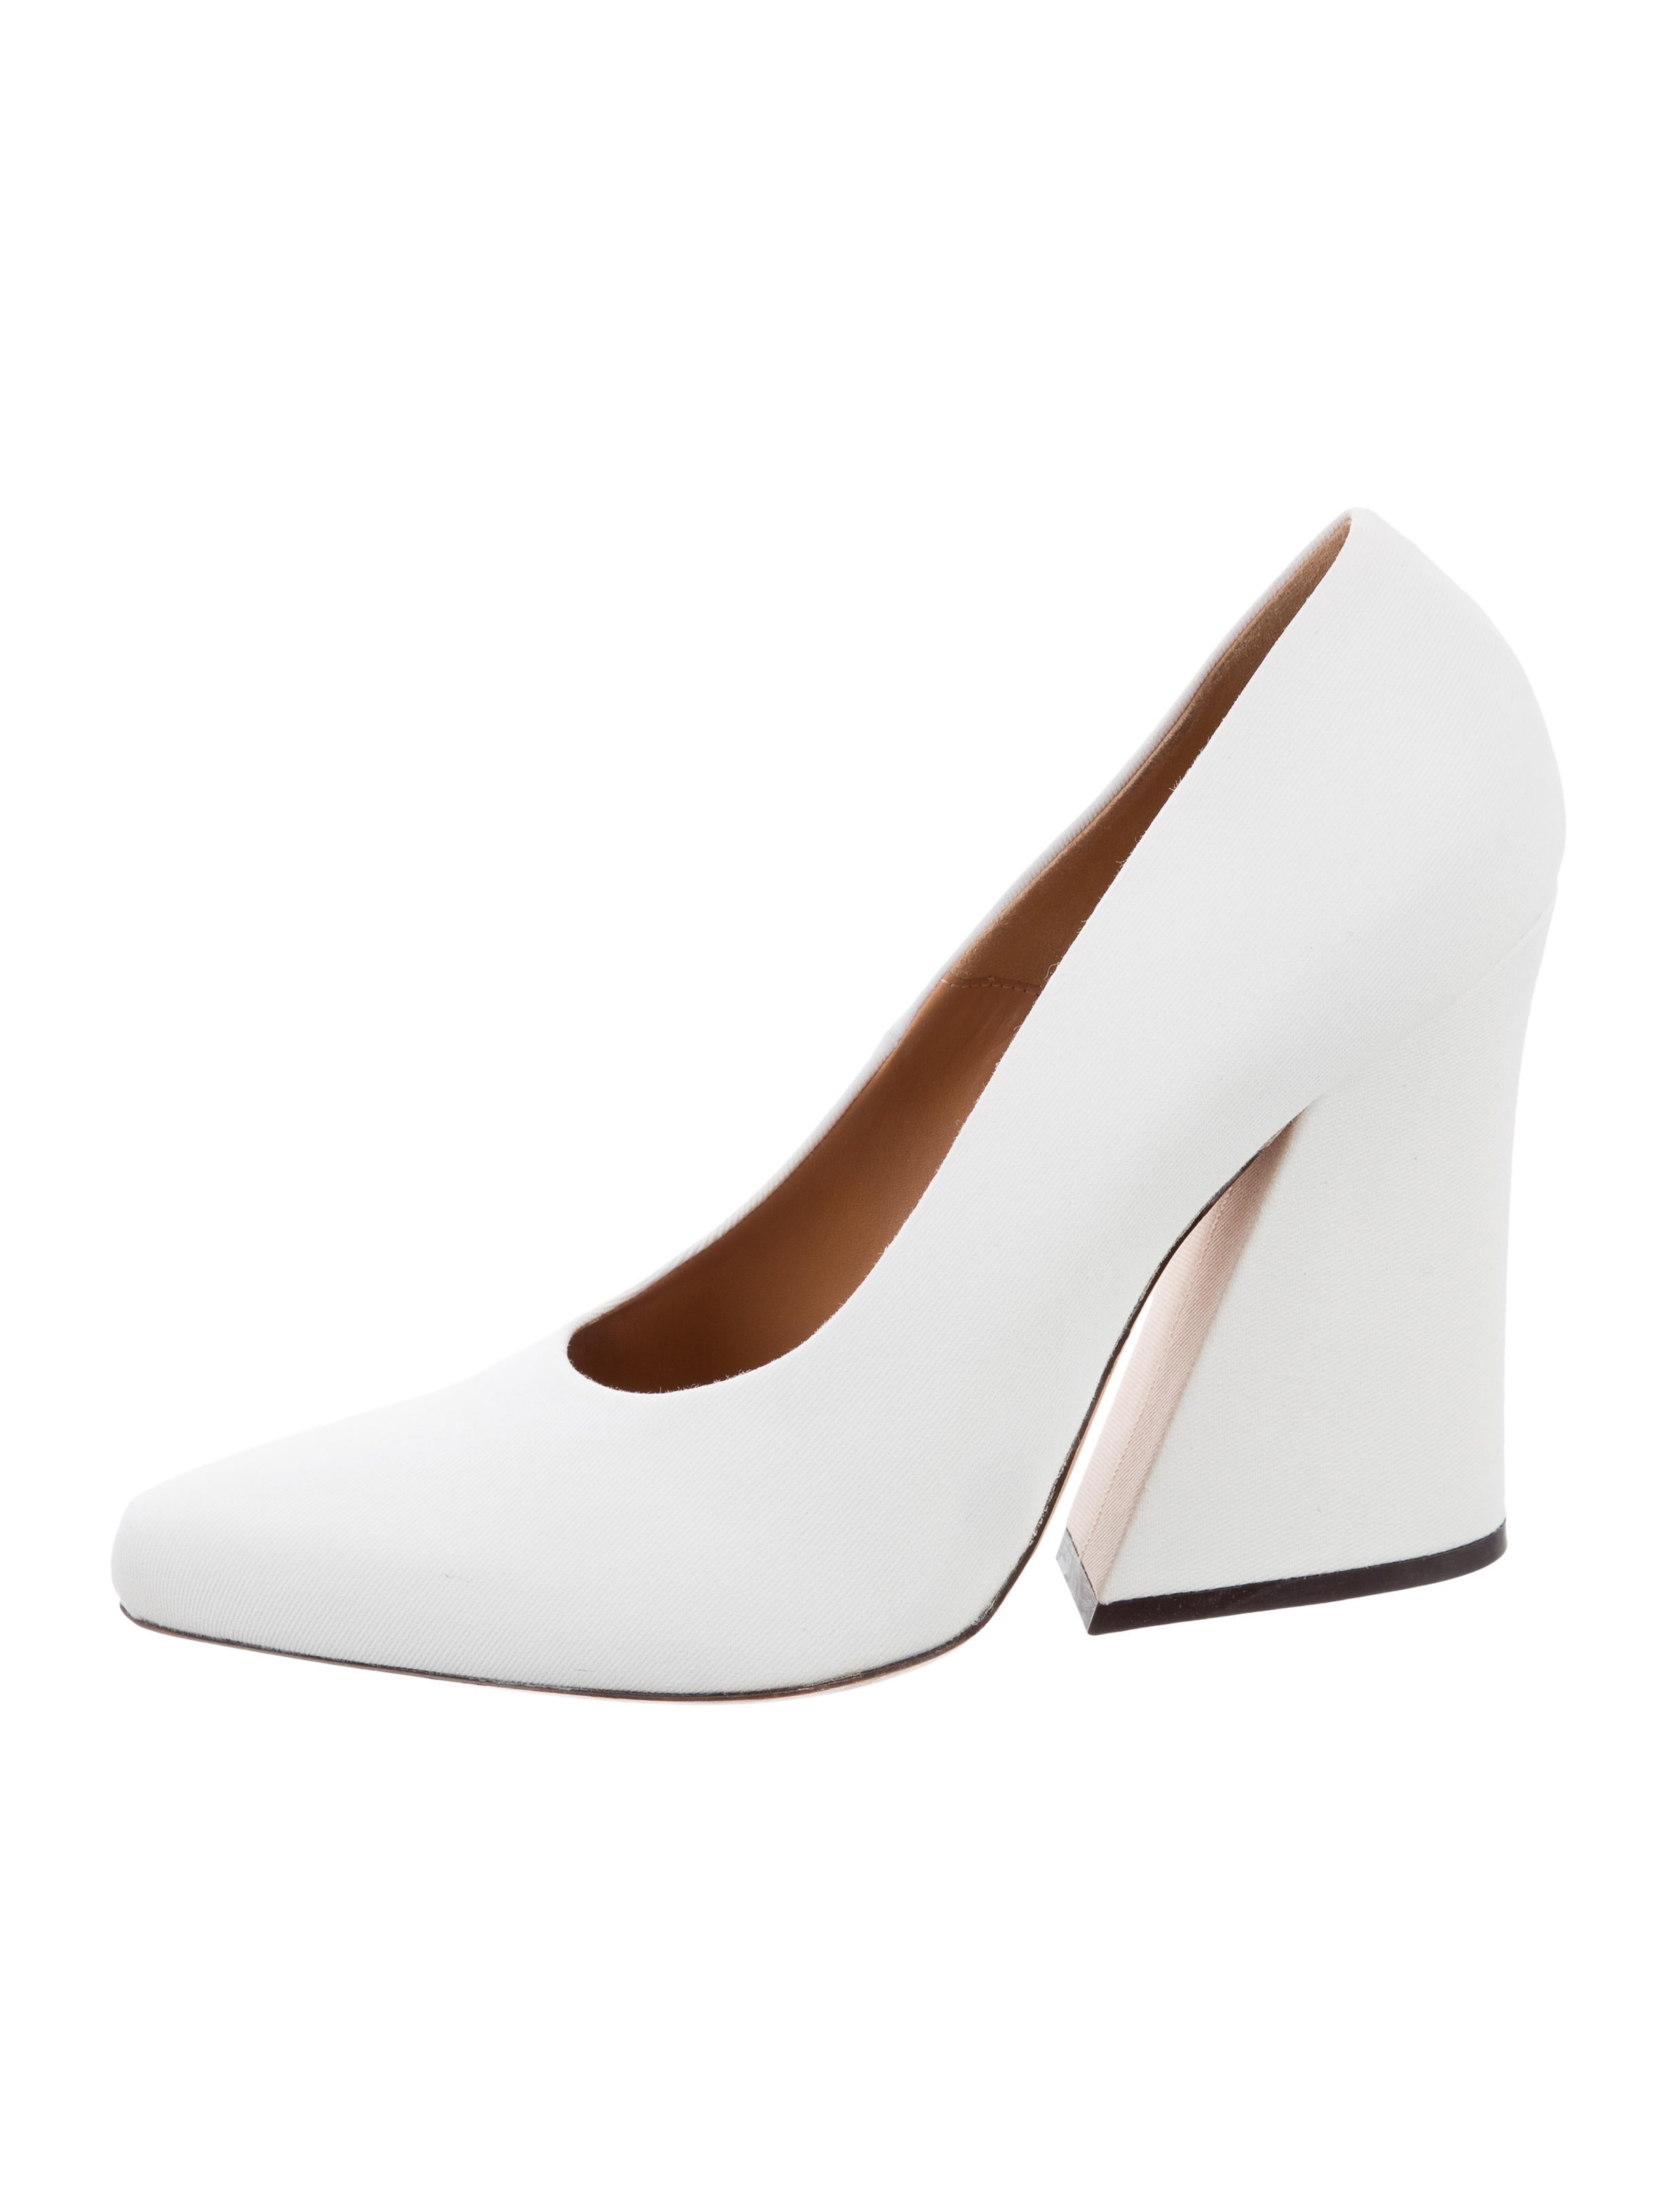 outlet free shipping authentic Dries Van Noten Canvas Round-Toe Pumps best place cheap price LB6IQx